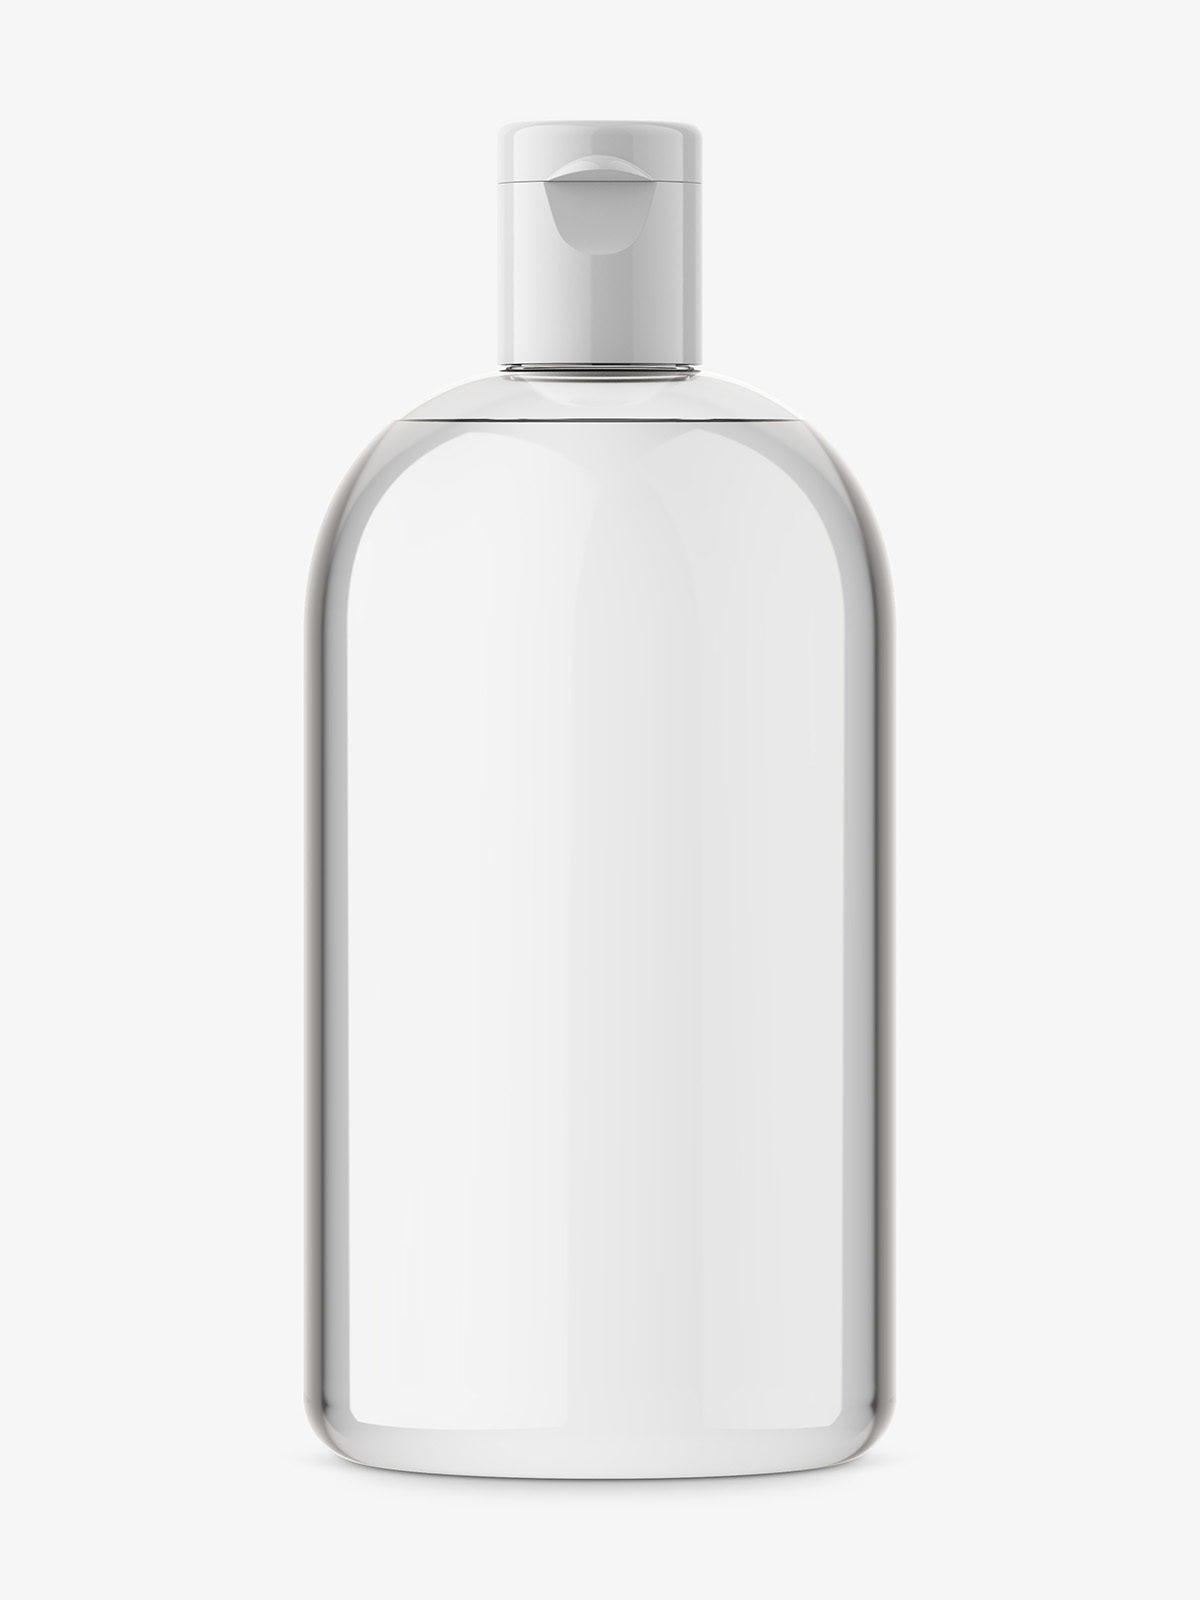 Boston bottle mockup / transparent